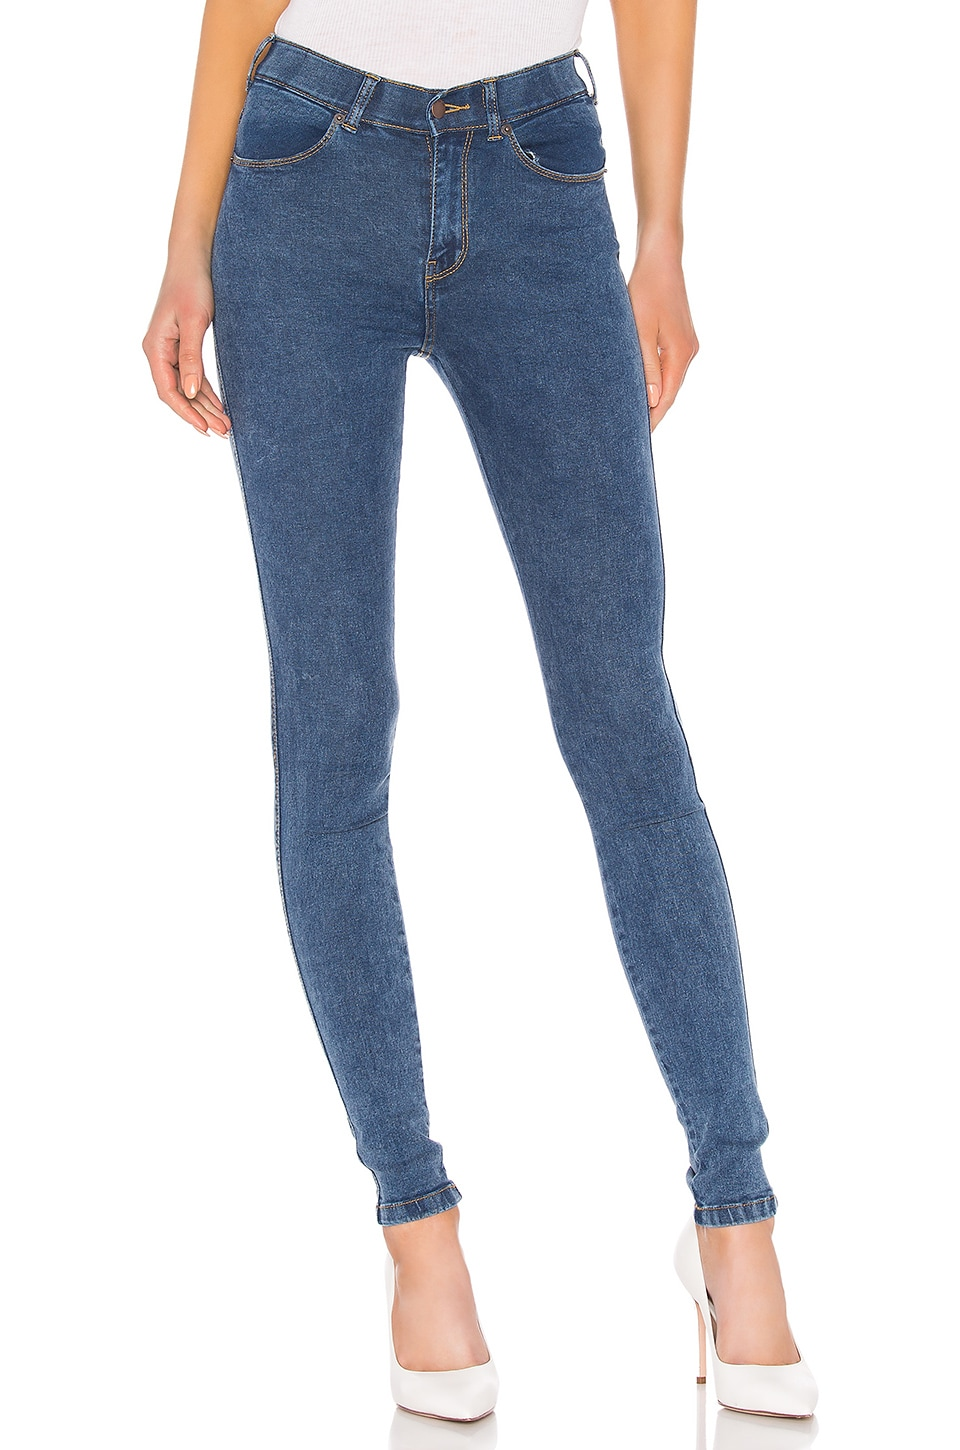 Dr. Denim Lexy Skinny in 70s Stone